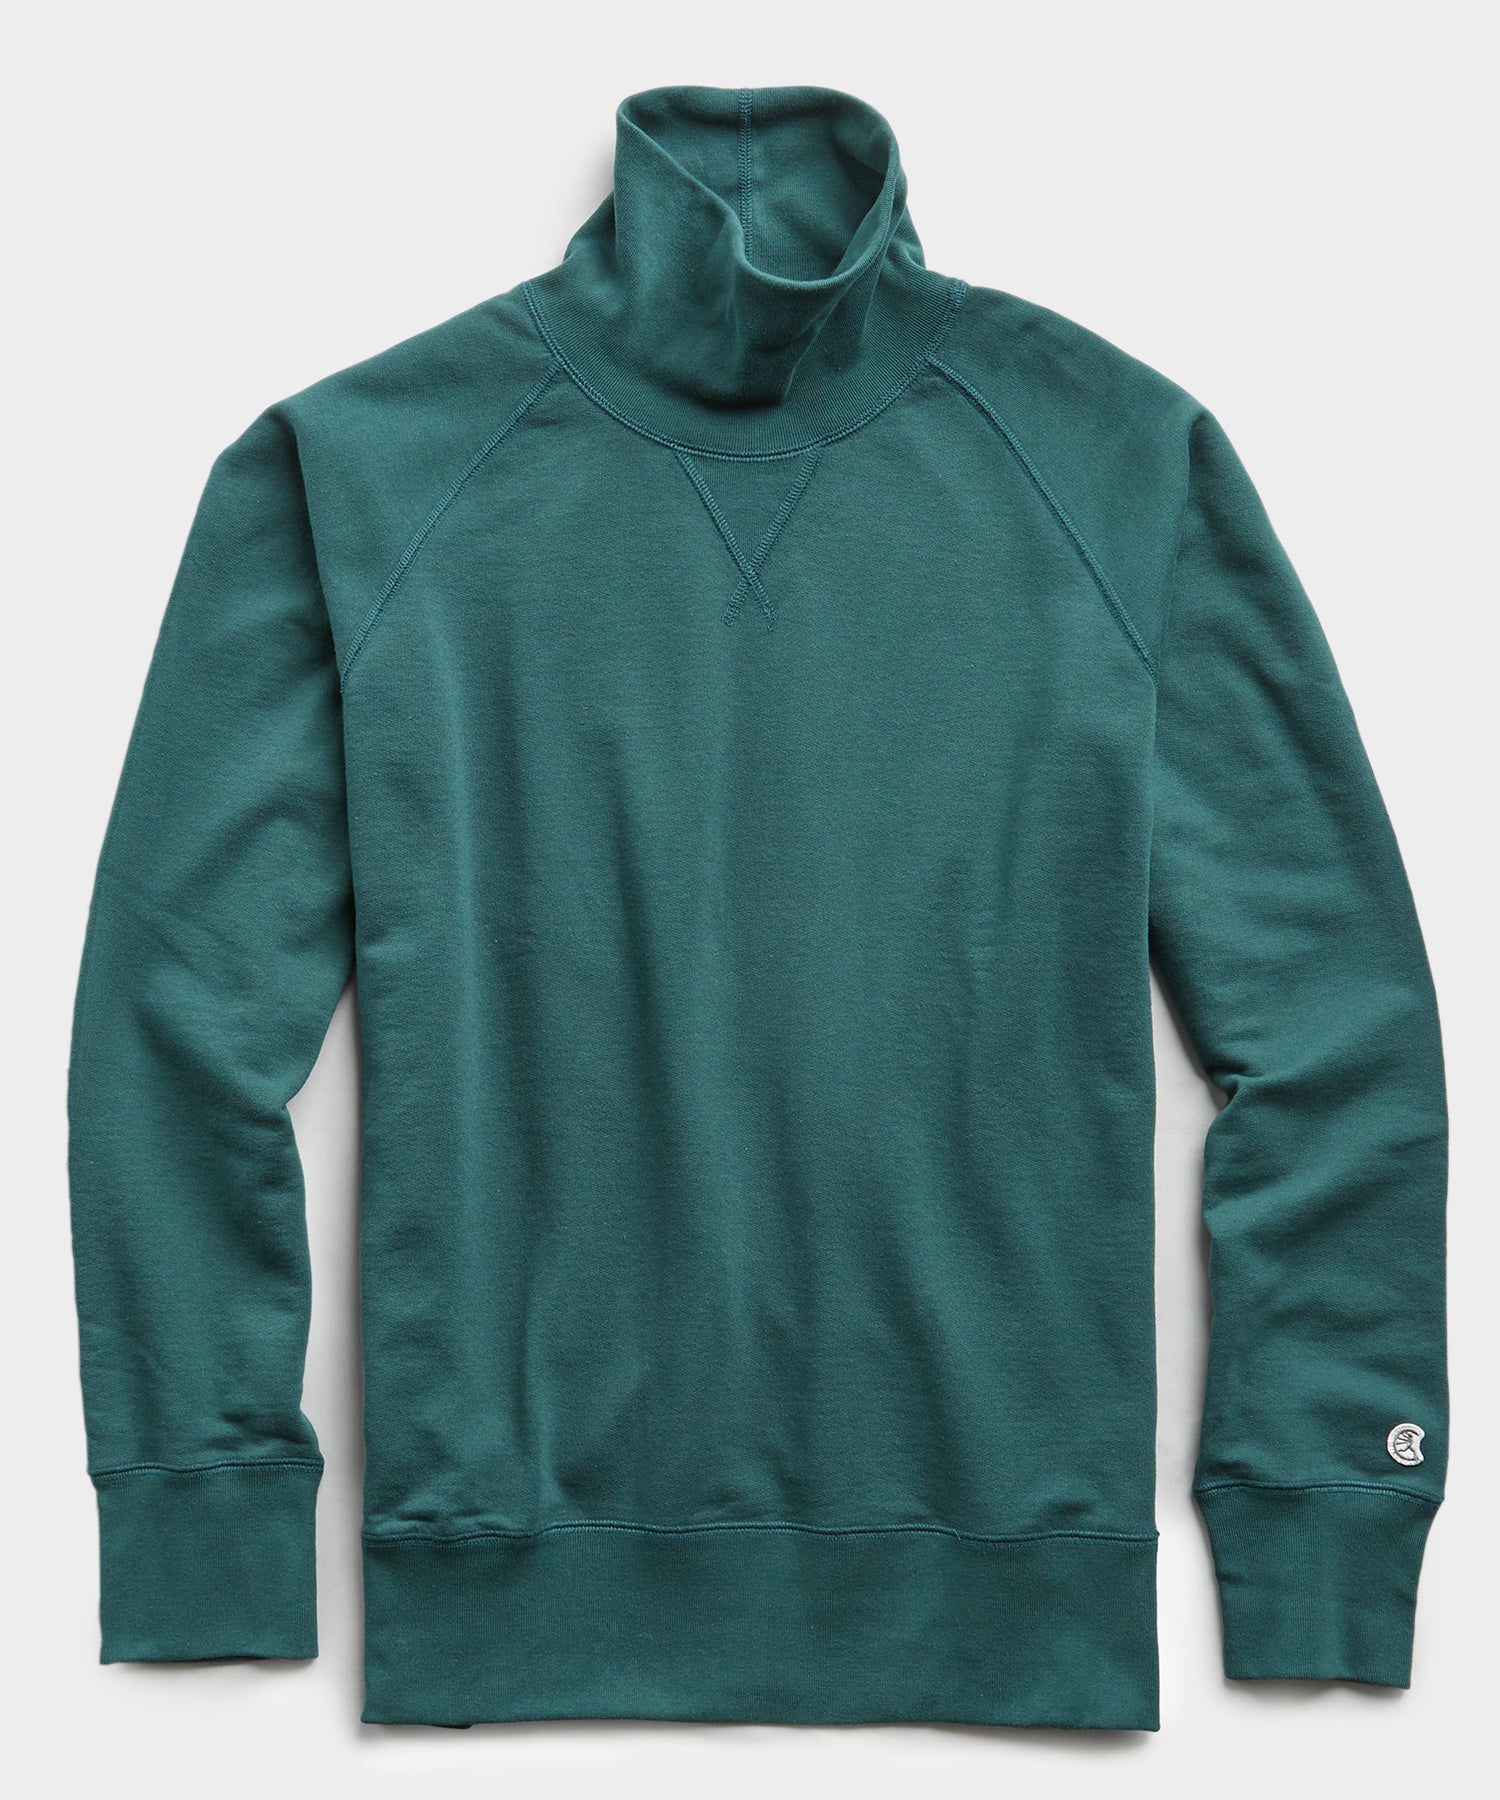 Terry Turtleneck Sweatshirt in Storm Green